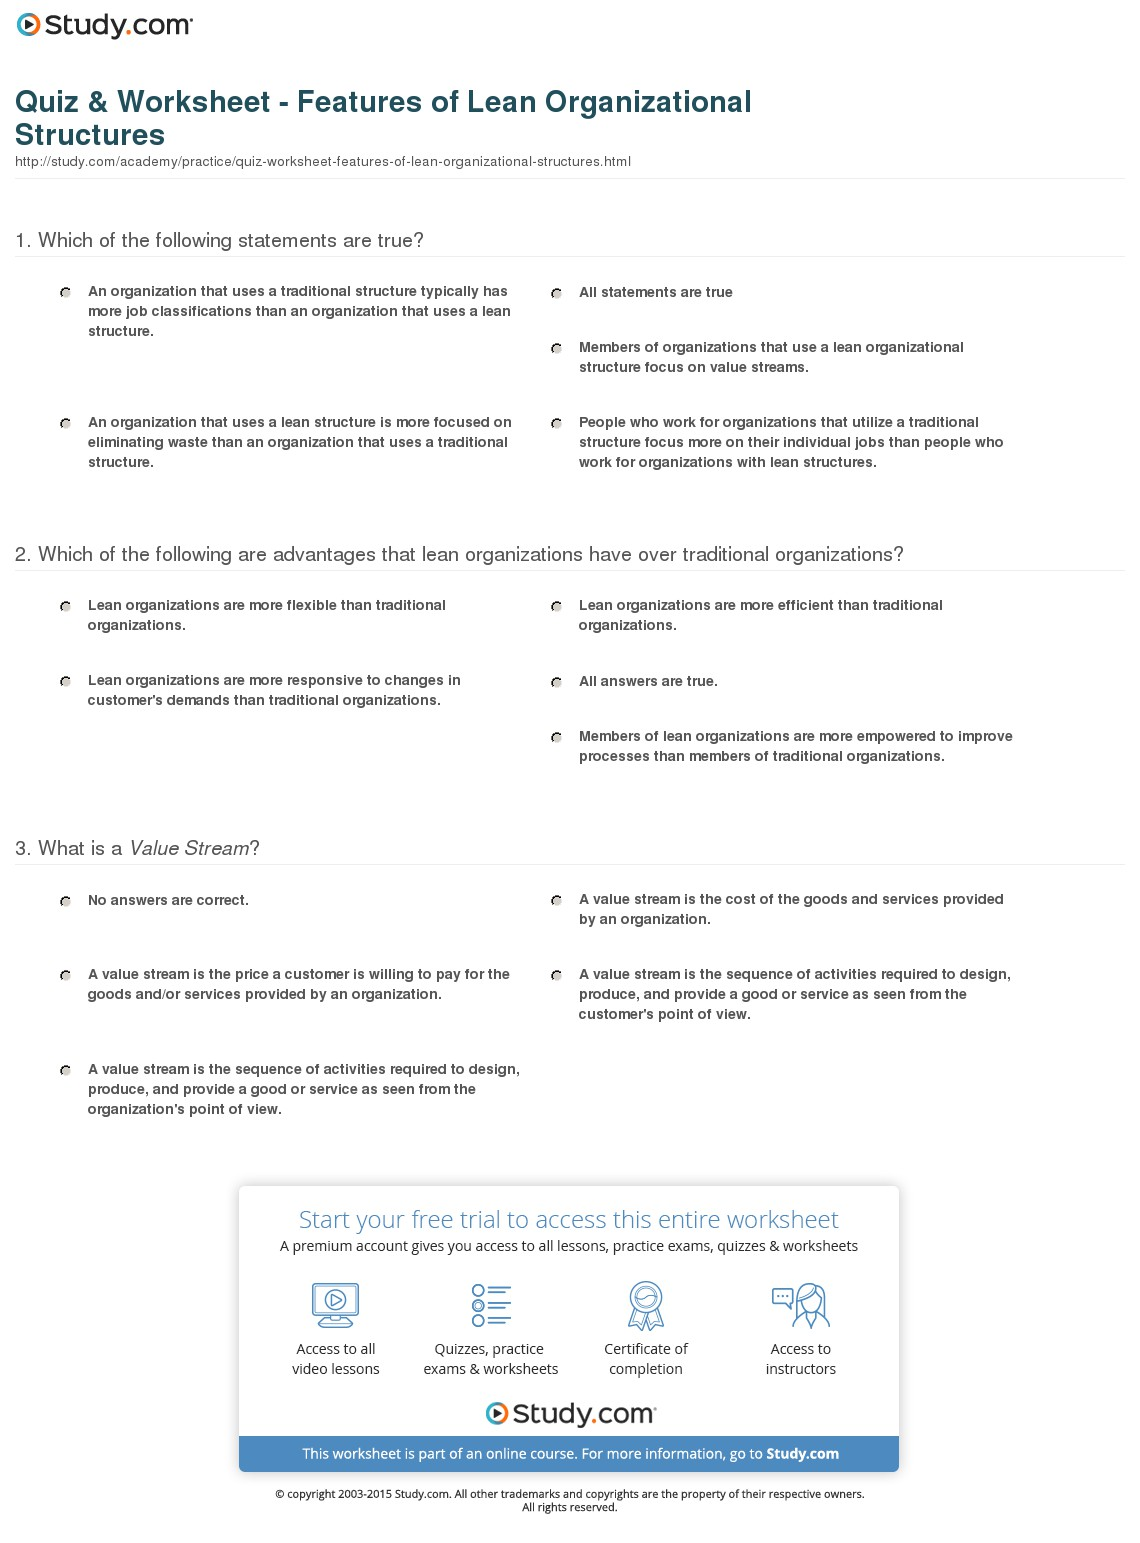 009 Essay Example Cause And Effect Of Overpopulation Quiz Worksheet Features Lean Organizational Remarkable Full